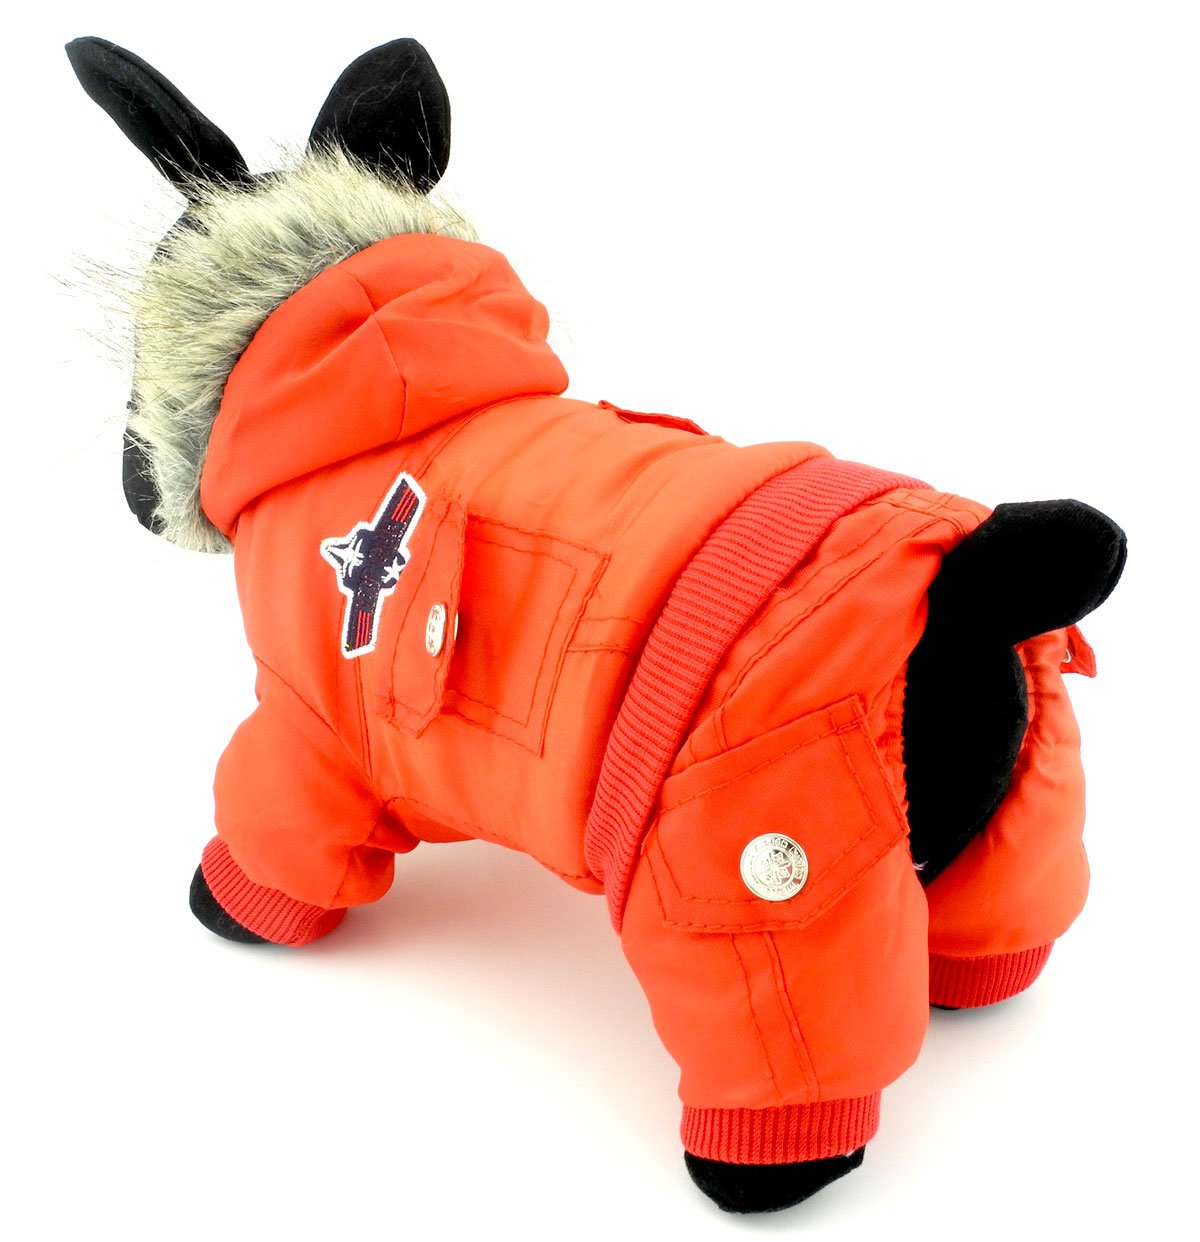 Zunea Padded Waterproof Small Dog Winter Jumpsuit Pet Puppy Jacket Coat Fleece Warm Snowsuit Airman Chihuahua Yorkie Outfits Clothes Apparel (This Style Run Small, pls Choose one Size Larger)